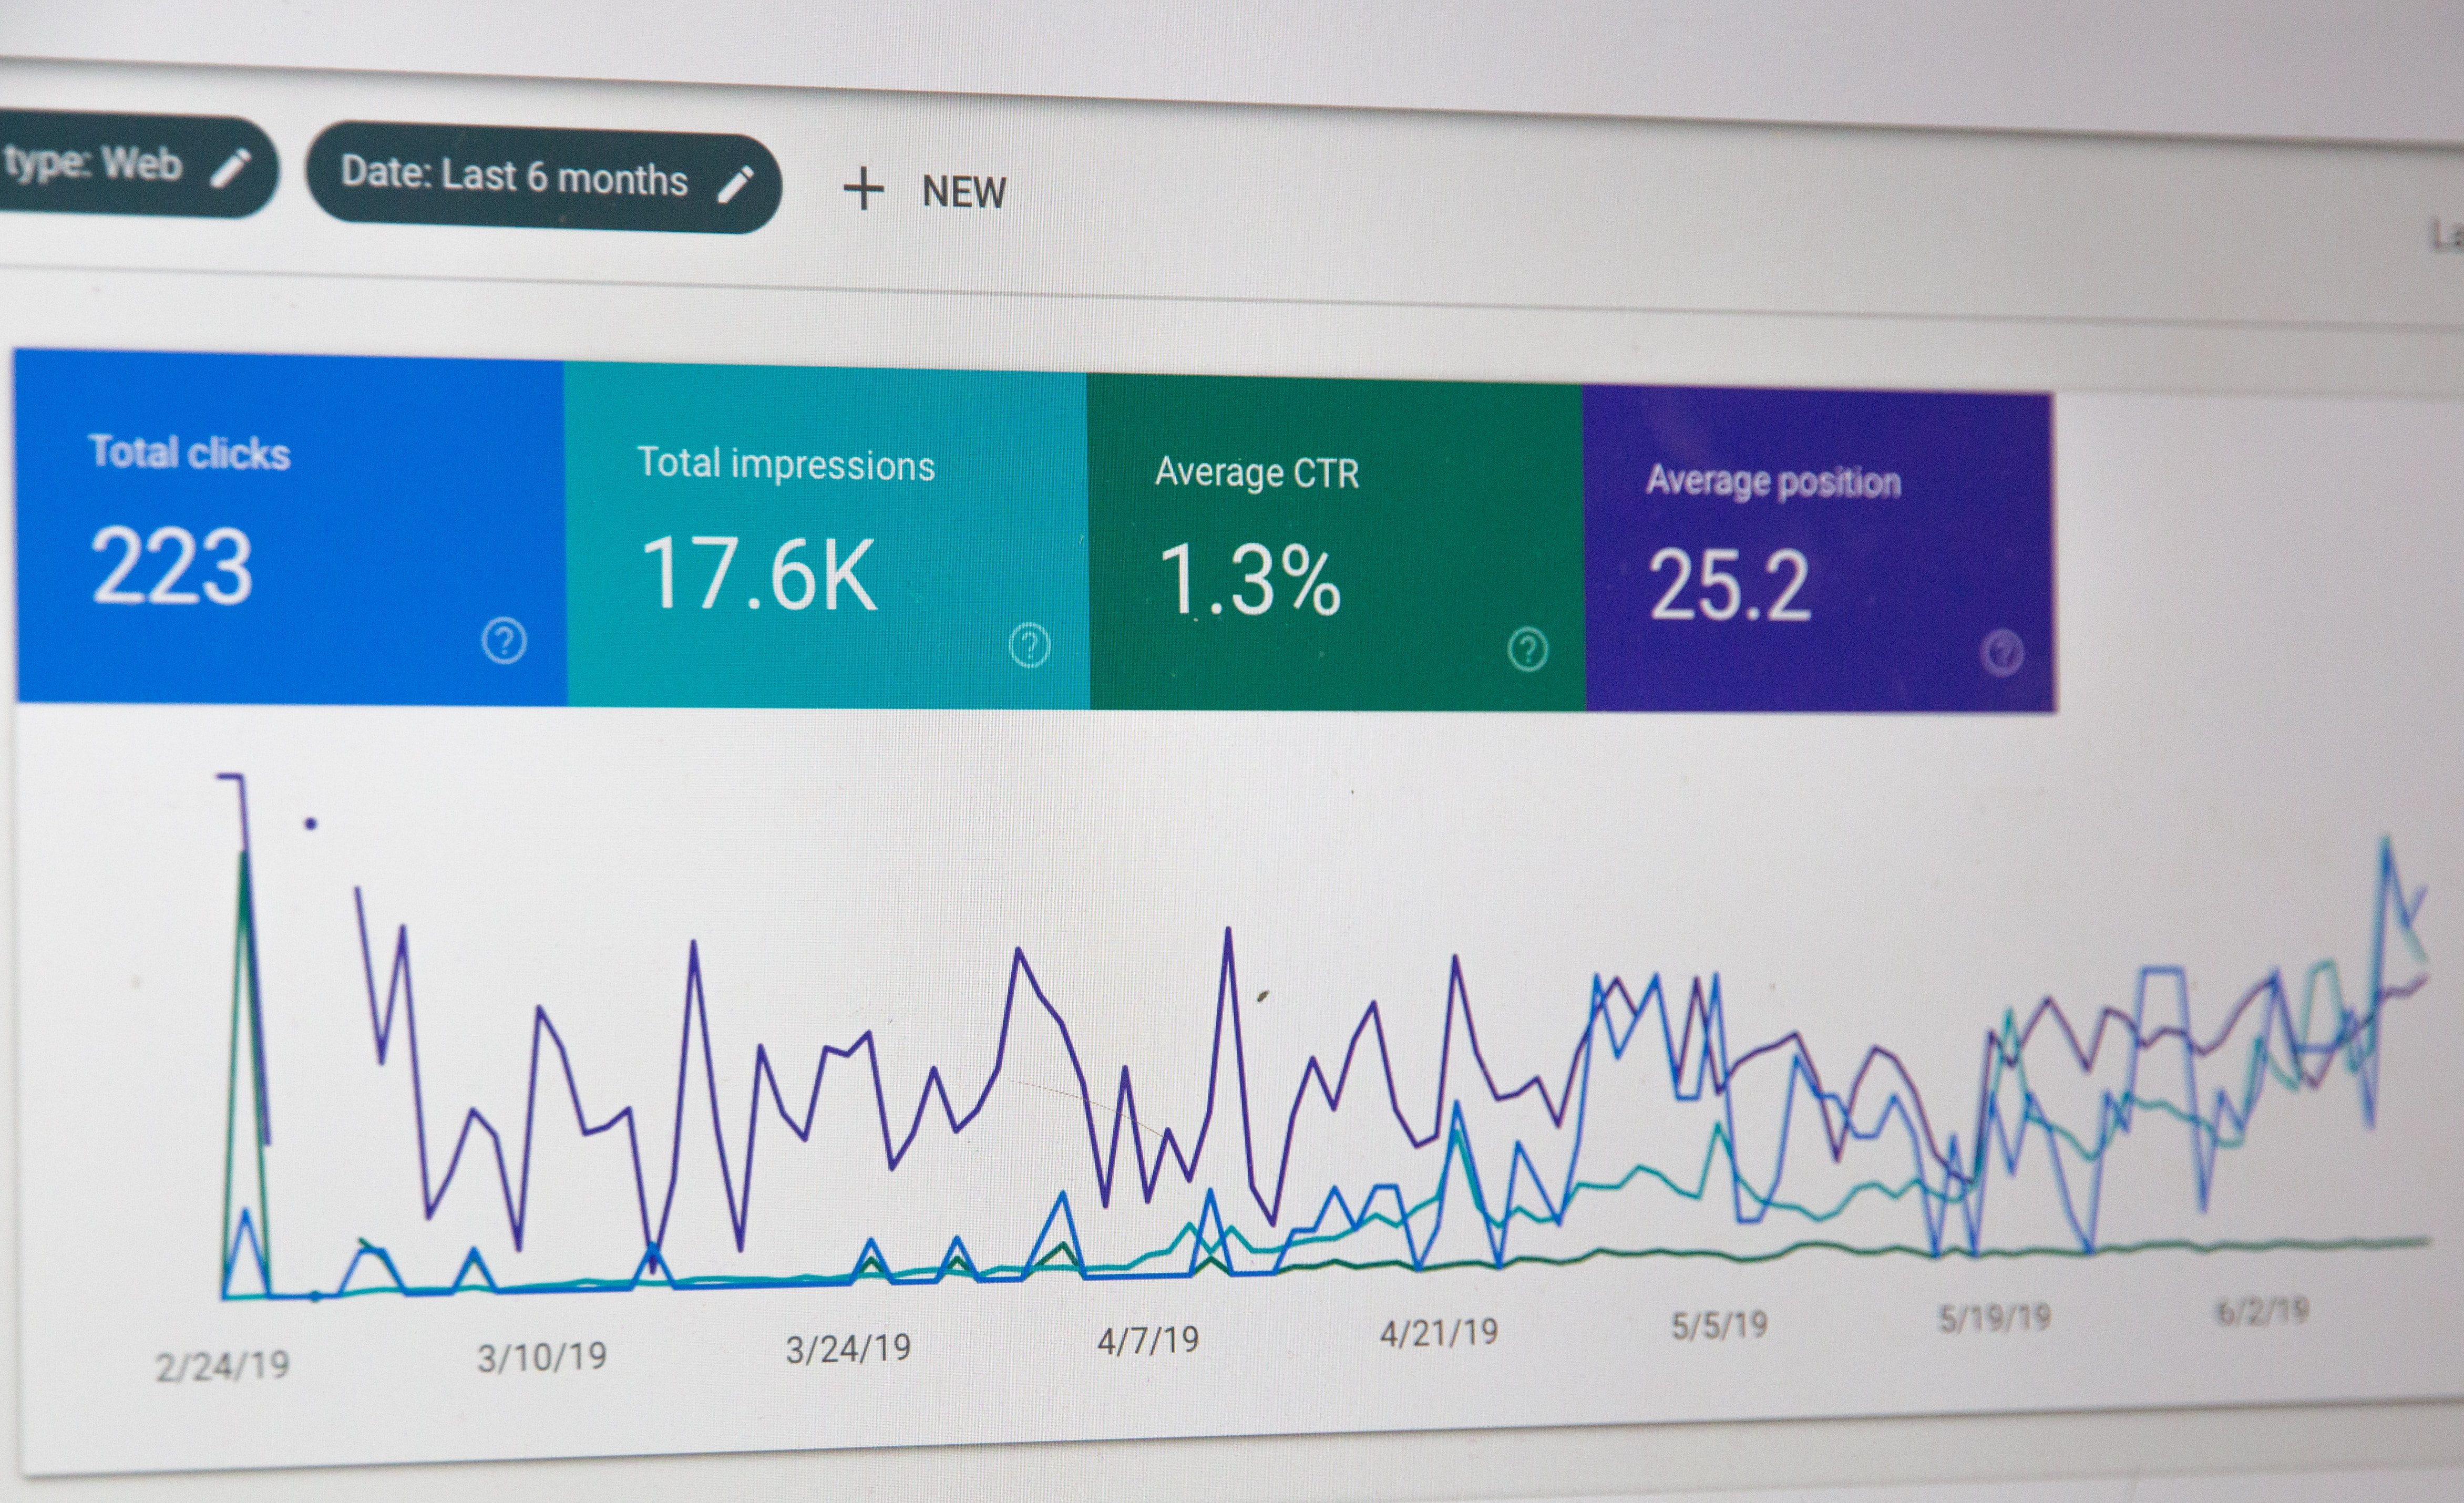 How to Use WhatConverts to Track Marketing Campaign Performance for Your Business